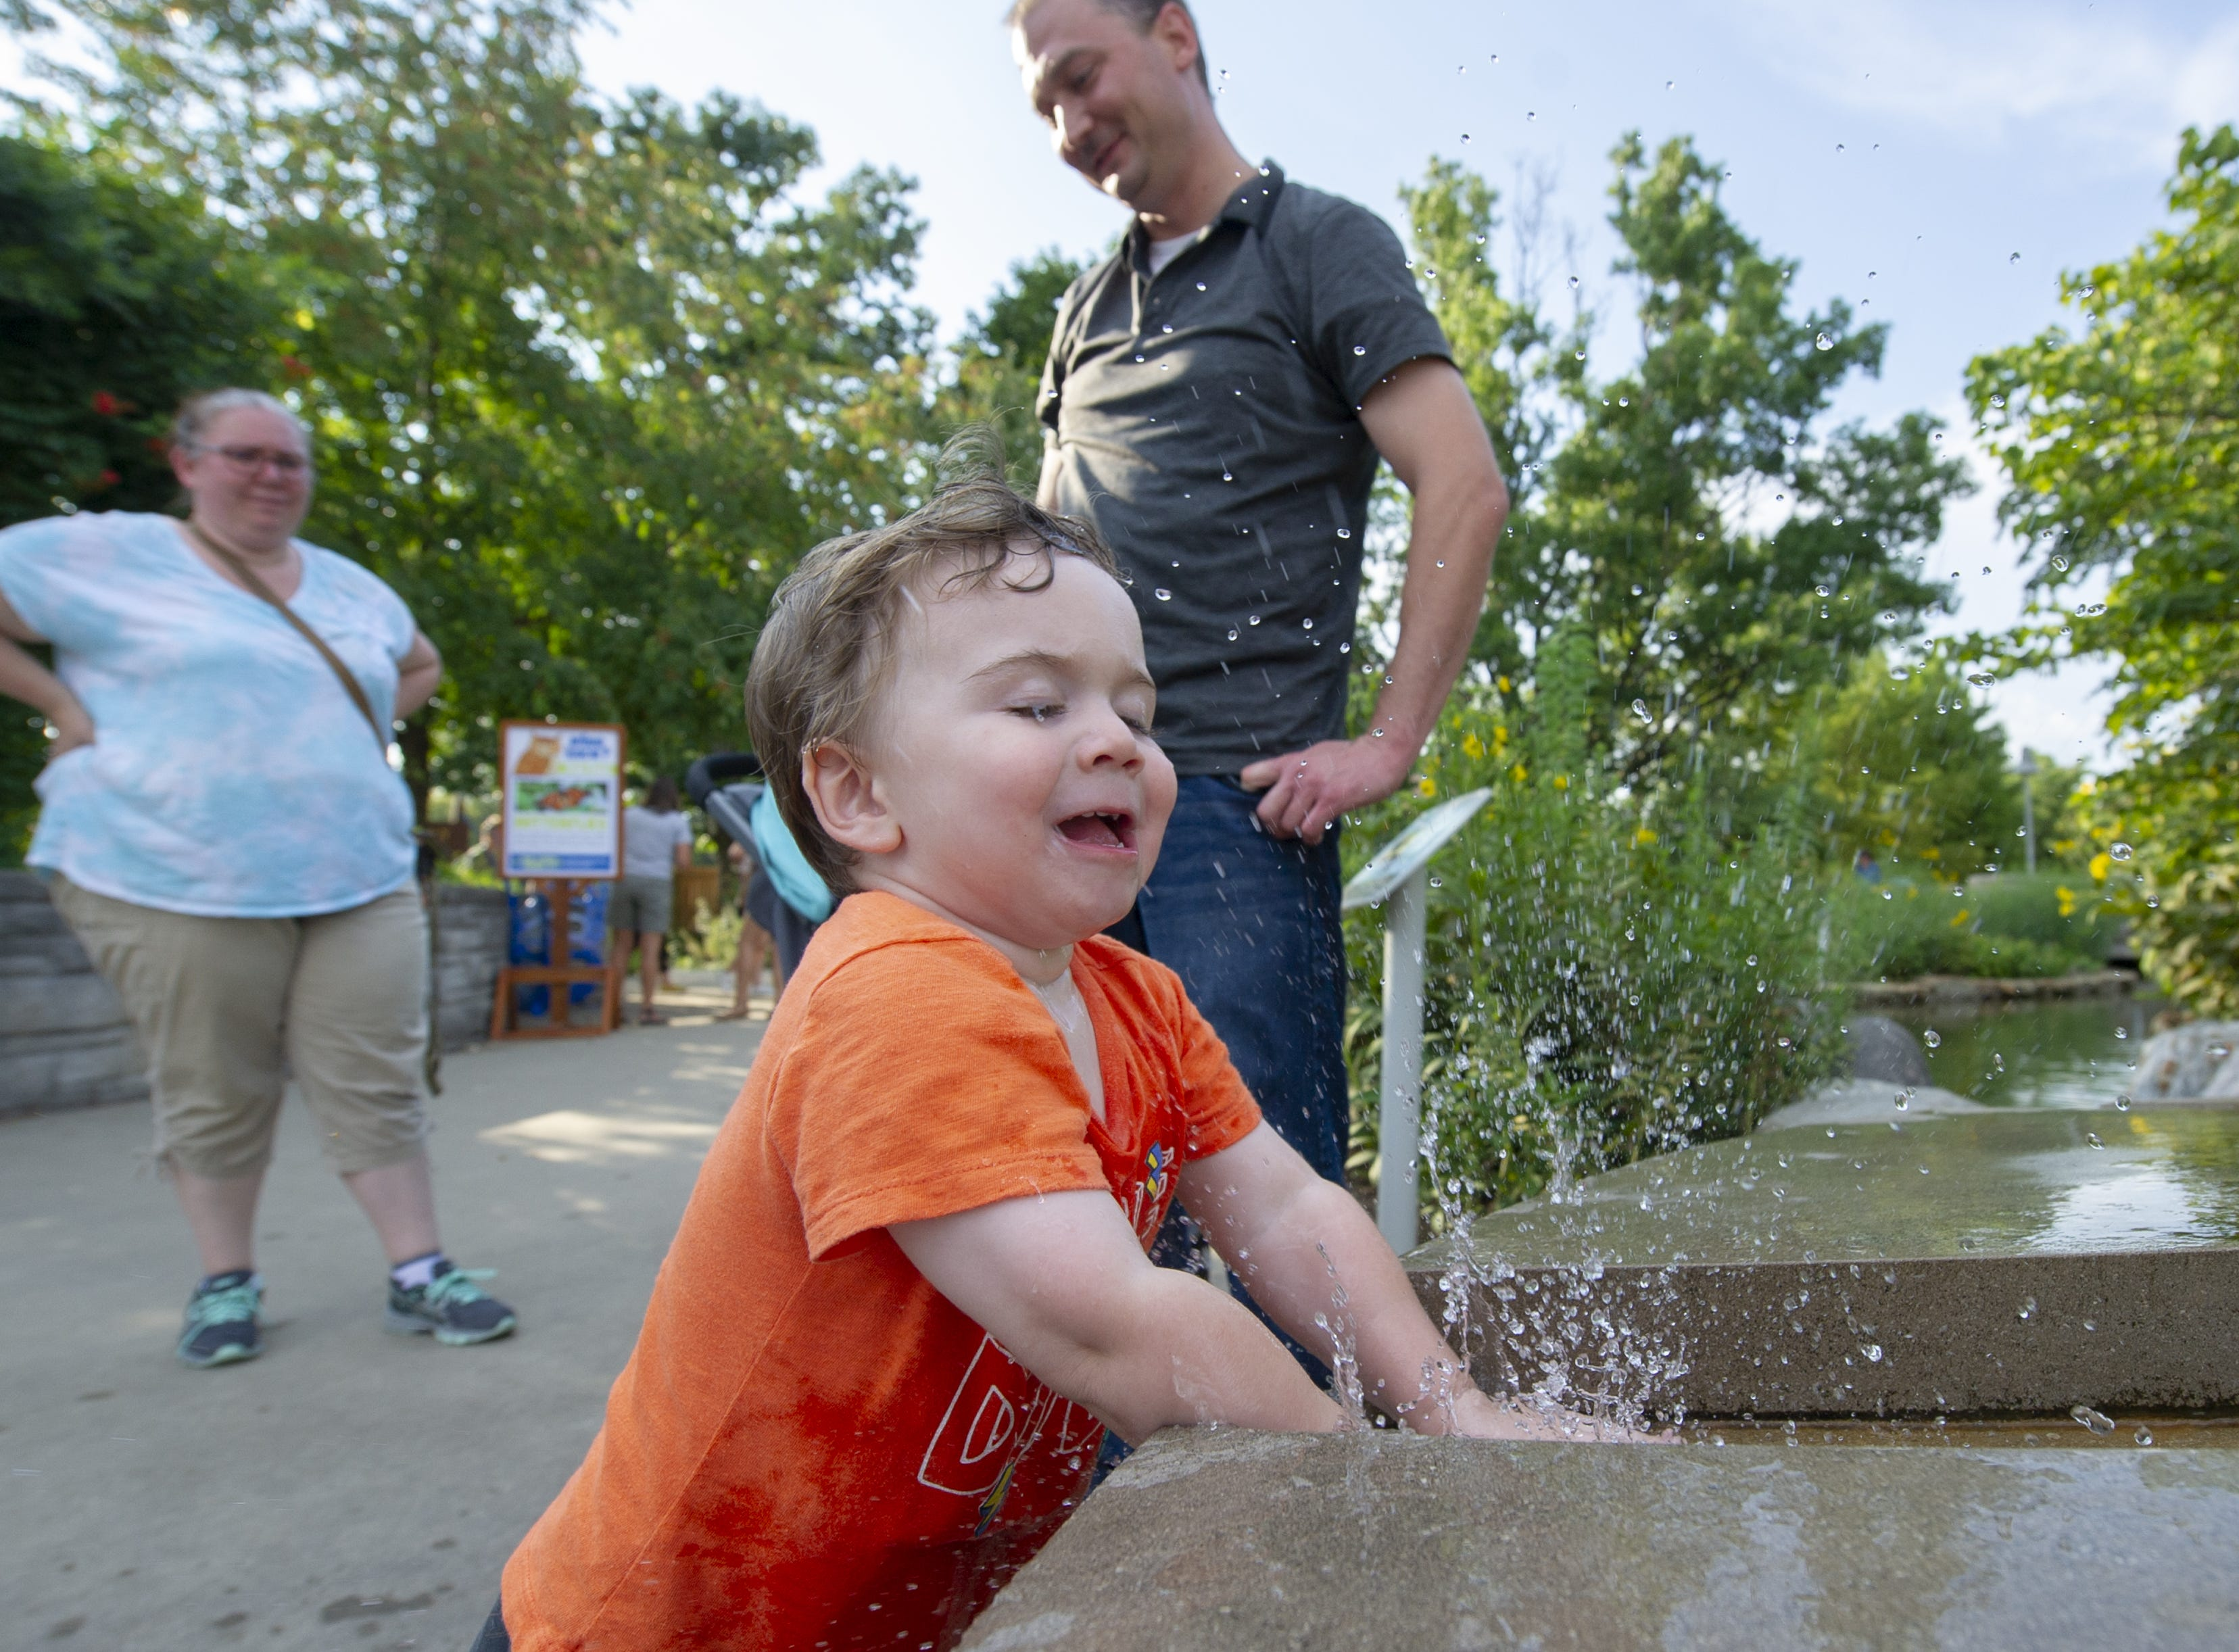 Connor Dermody, 2, of McCordsville, splashes in the water flowing from a fountain in the Department of Natural Resources area at the Indiana State Fair, Friday, Aug. 10, 2018. His parents, Elisabeth and Mark let him cool off with his play.